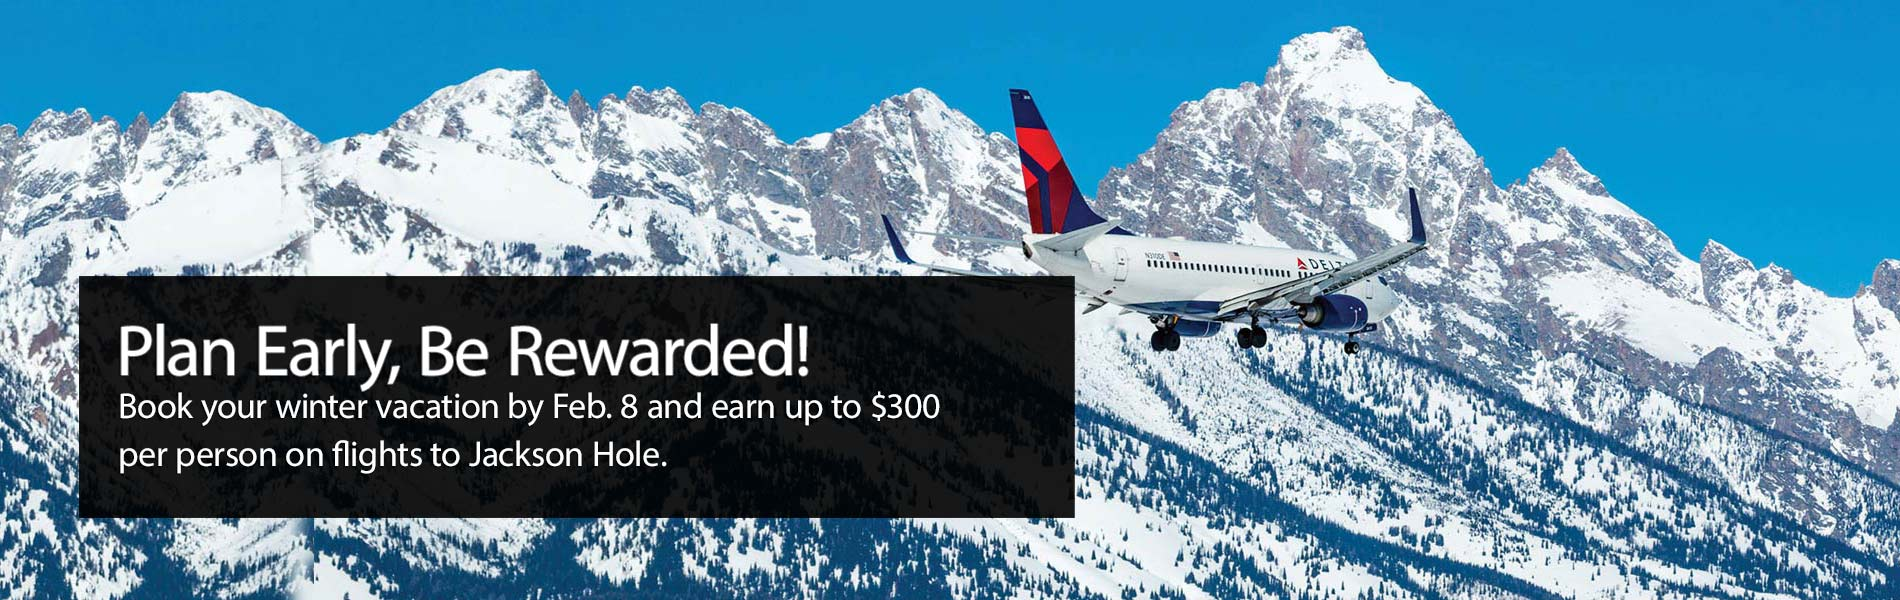 Plan Early, Be Rewarded. Book your winter vacation by Feb. 8 and earn up to 300 dollars per person on your flights to Jackson Hole.